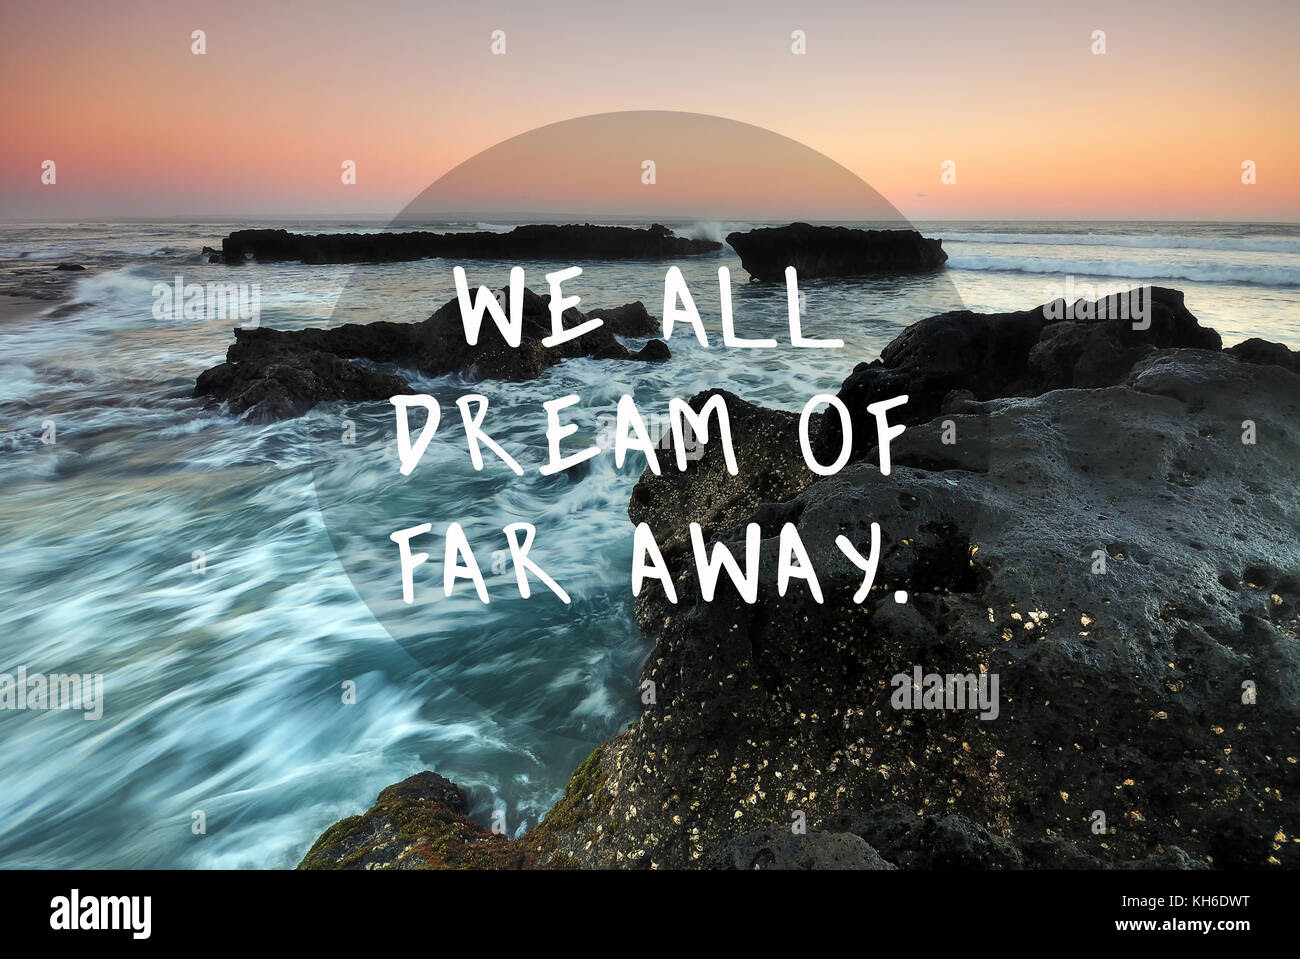 Travel Inspirational Quotes We All Dream Of Far Away Stock Photo